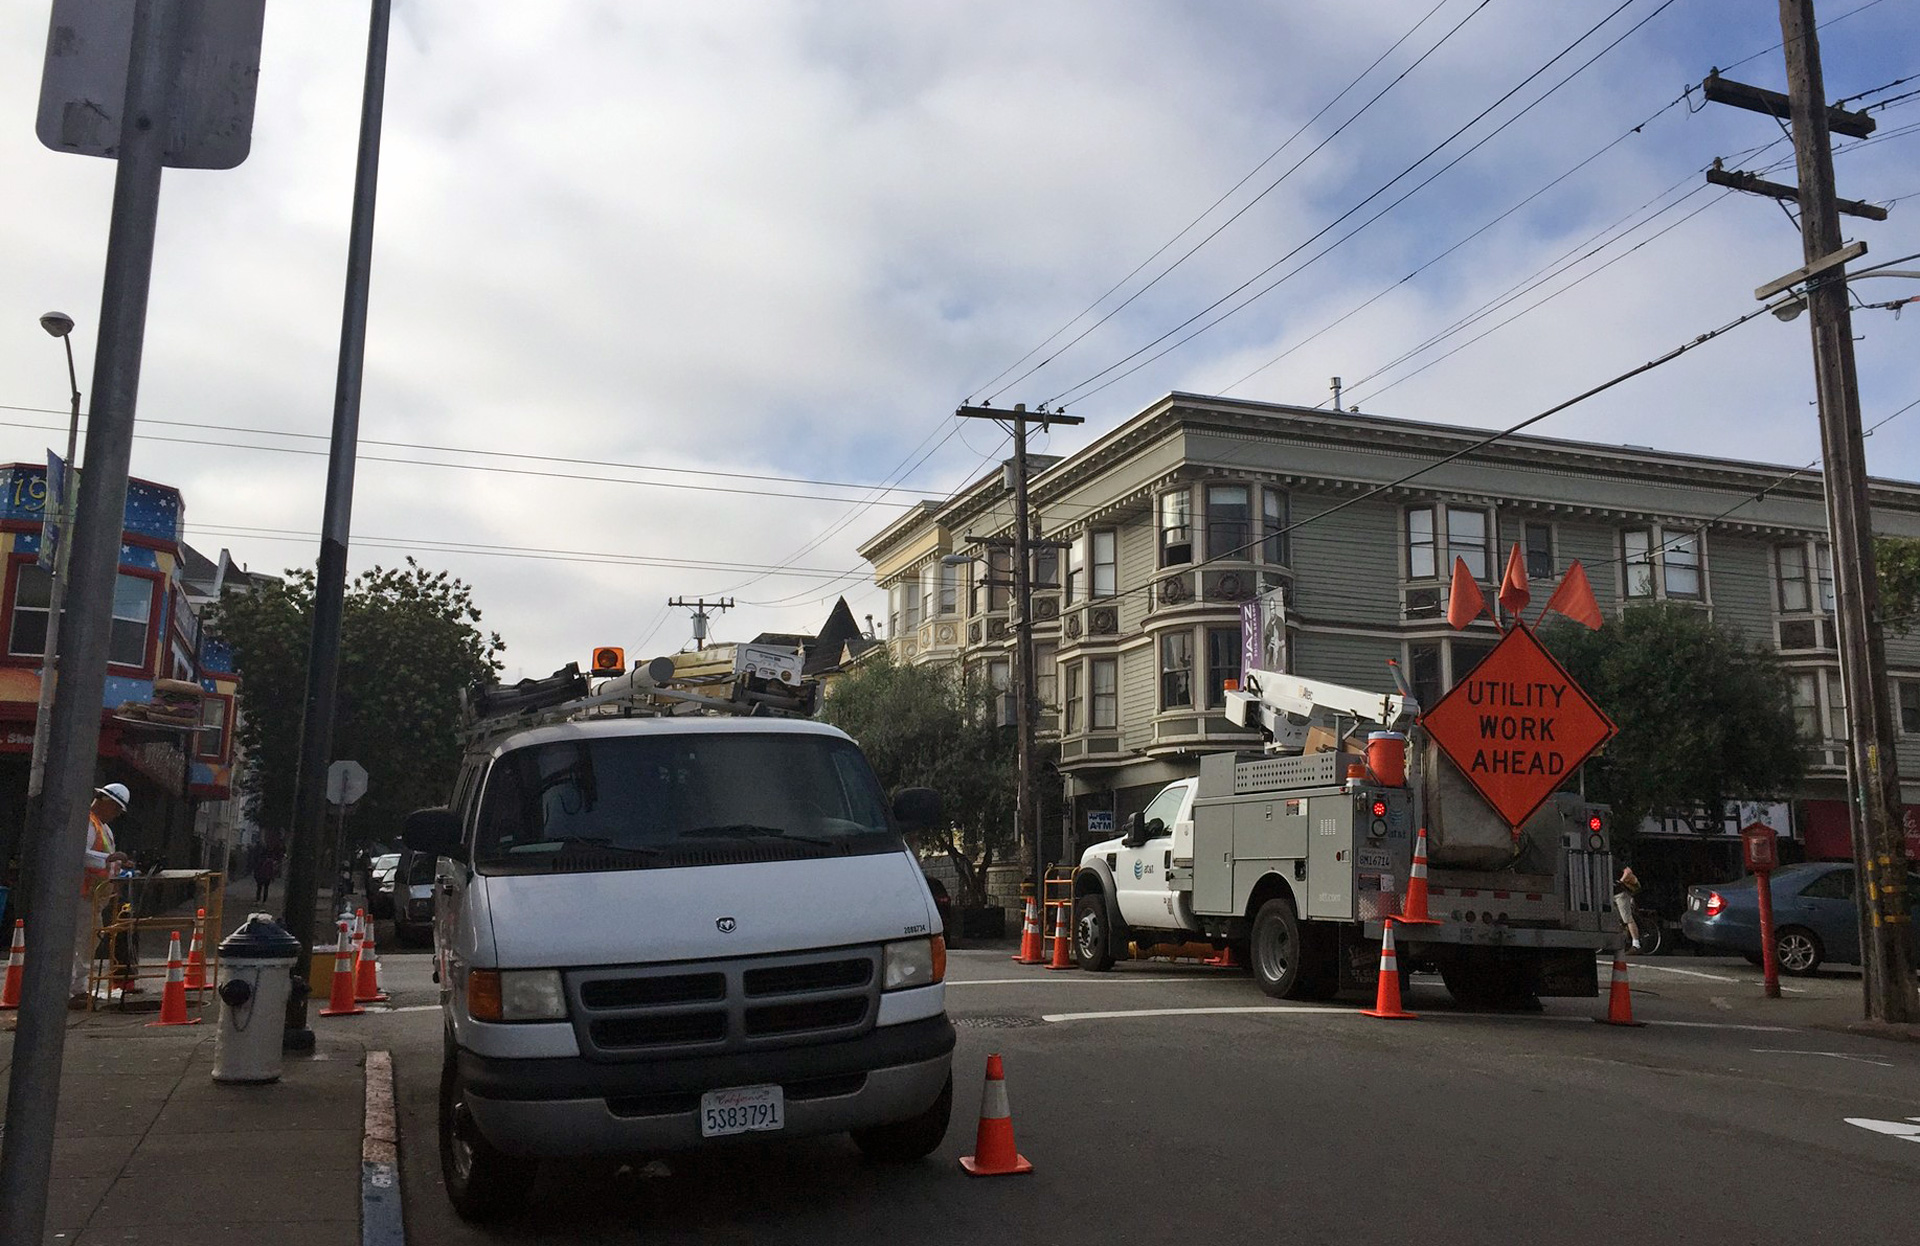 The city has shut down an infrastructure project in the Haight after five gas leaks.